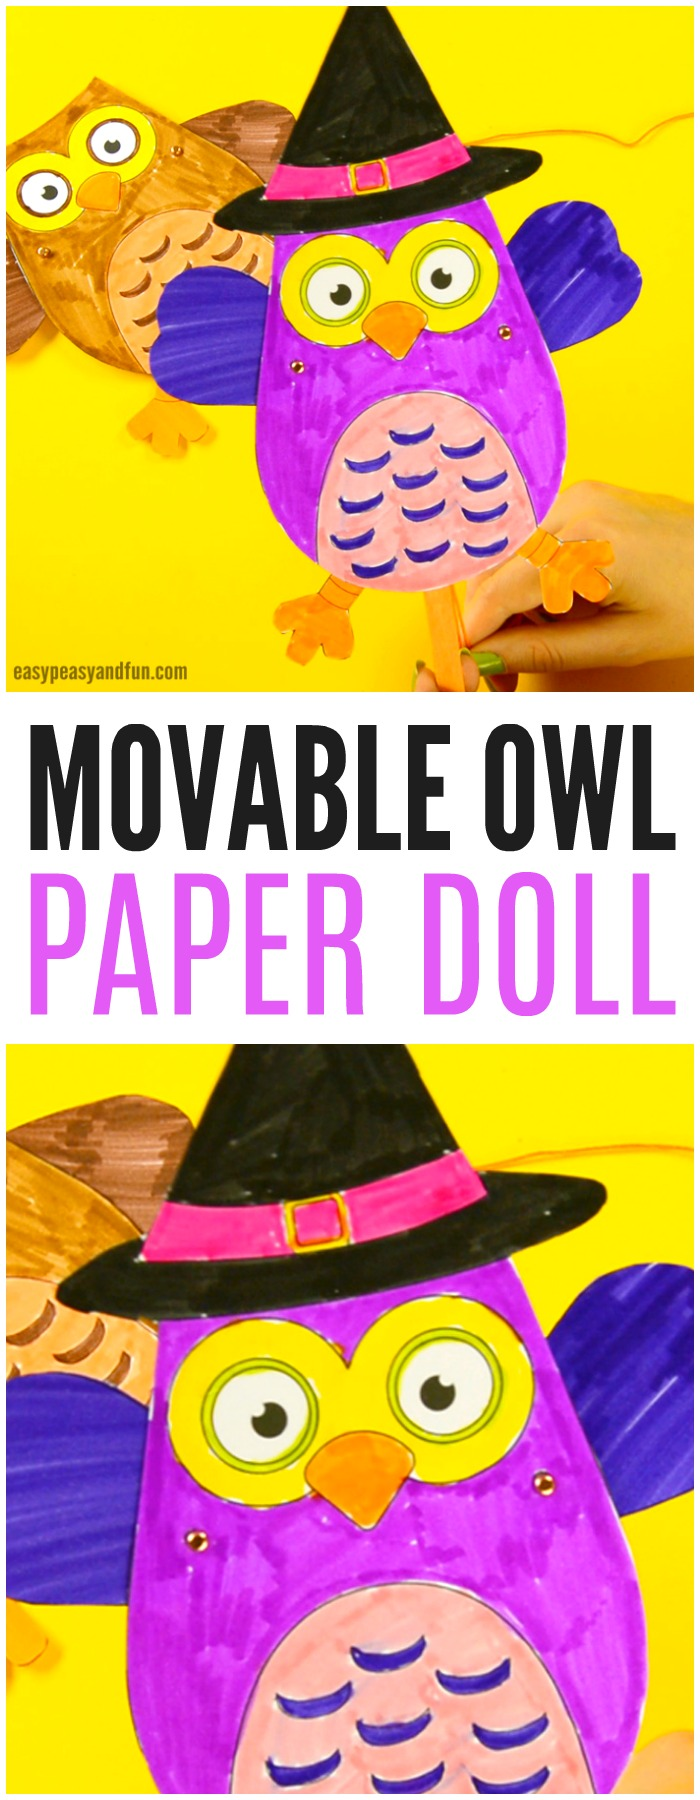 Movable Owl Paper Doll Template Craft for Kids. Fun Halloween and Fall craft for kids.